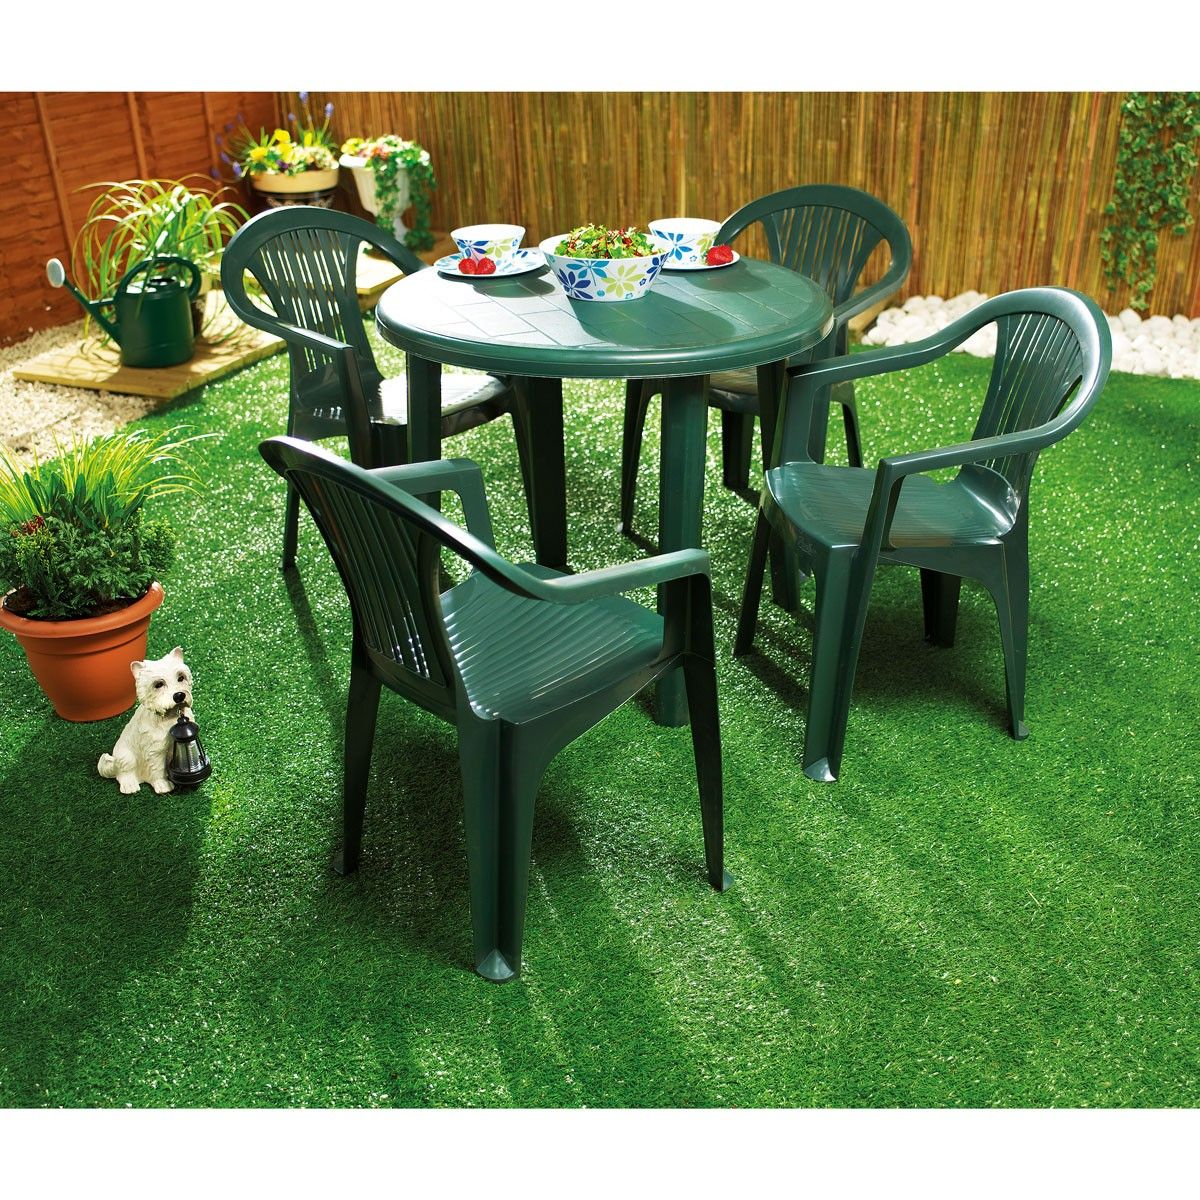 explore green table table and chair sets and more